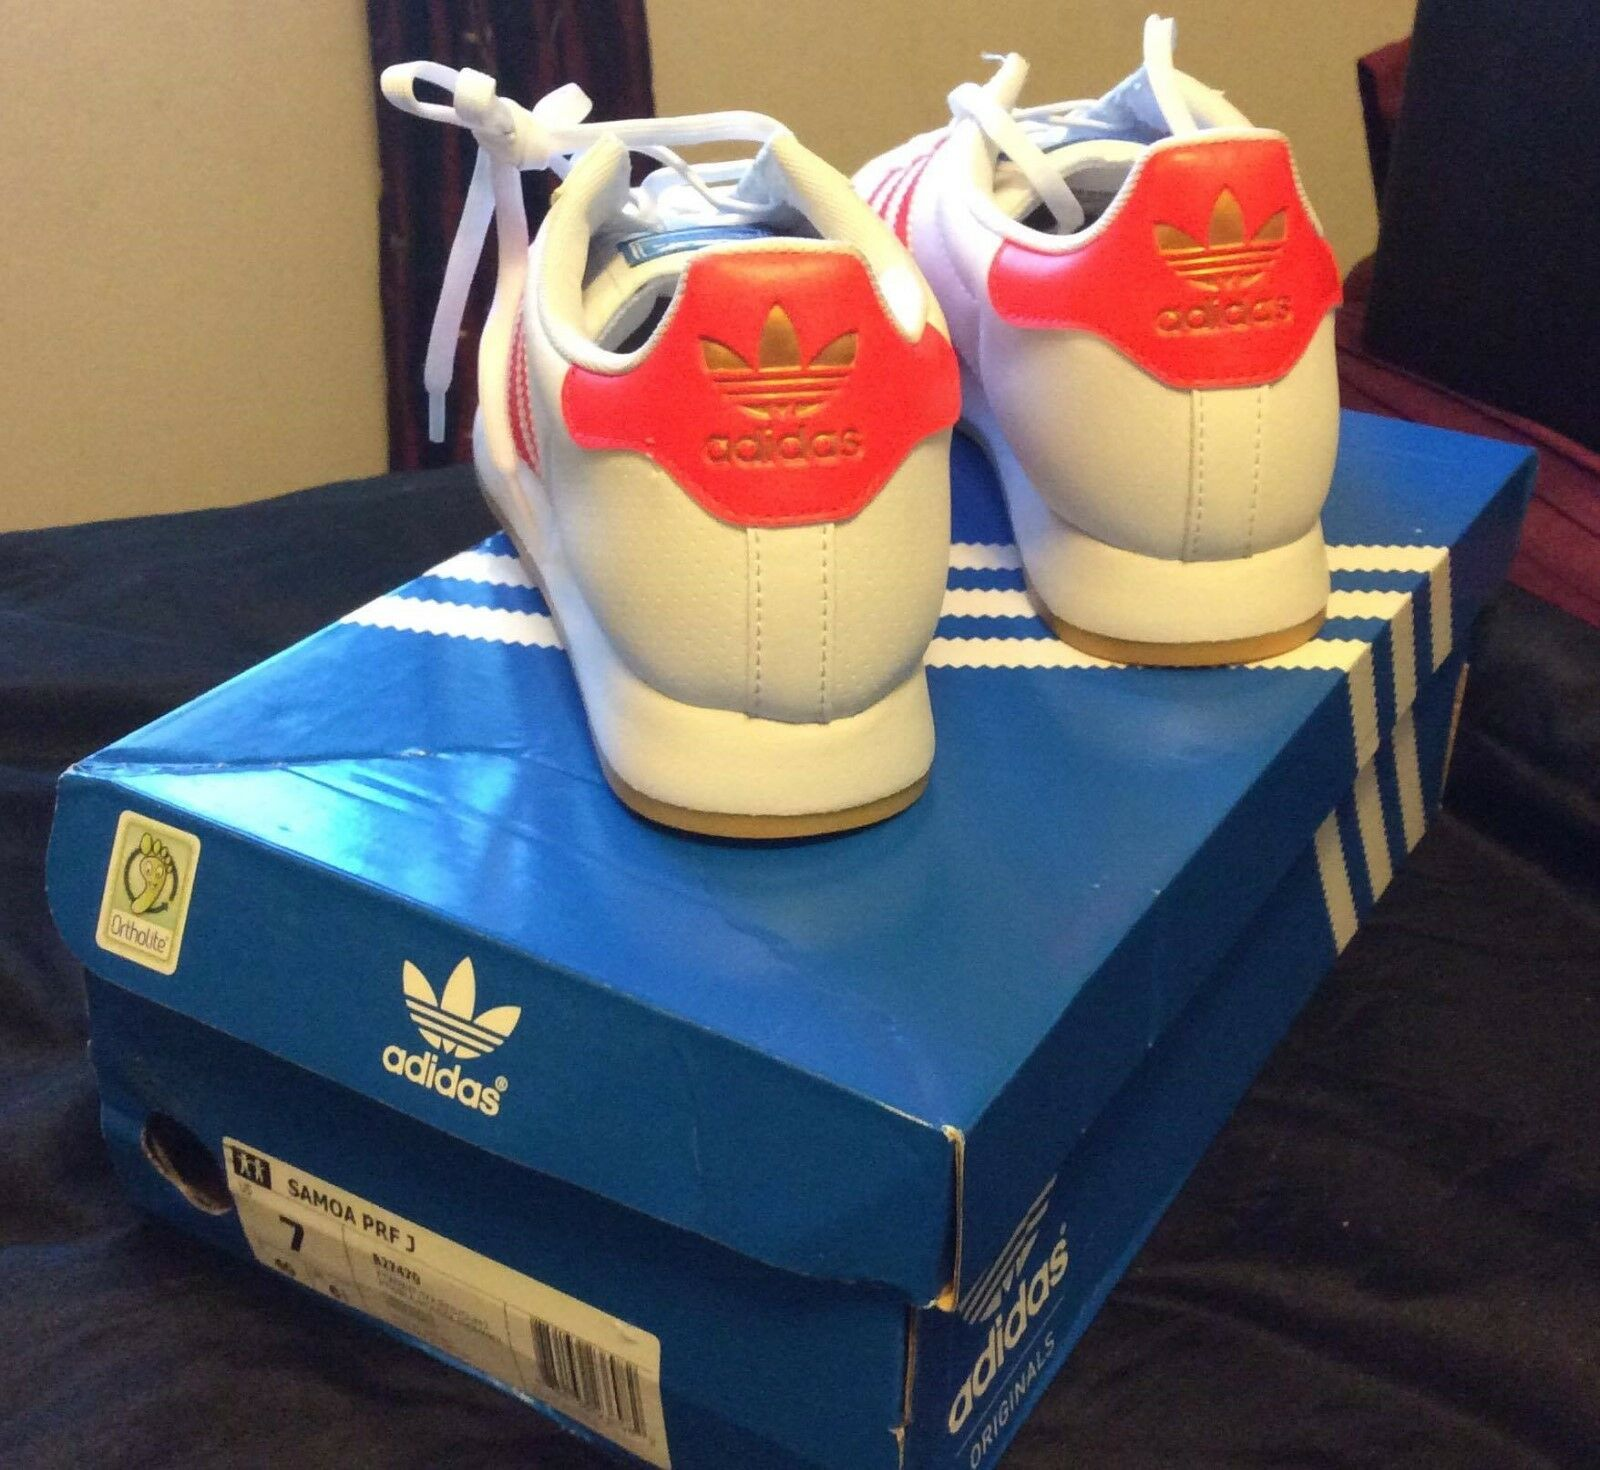 Adidas Samoa PRF J White gold emblem with red strips, I have only worn them once Comfortable and good-looking